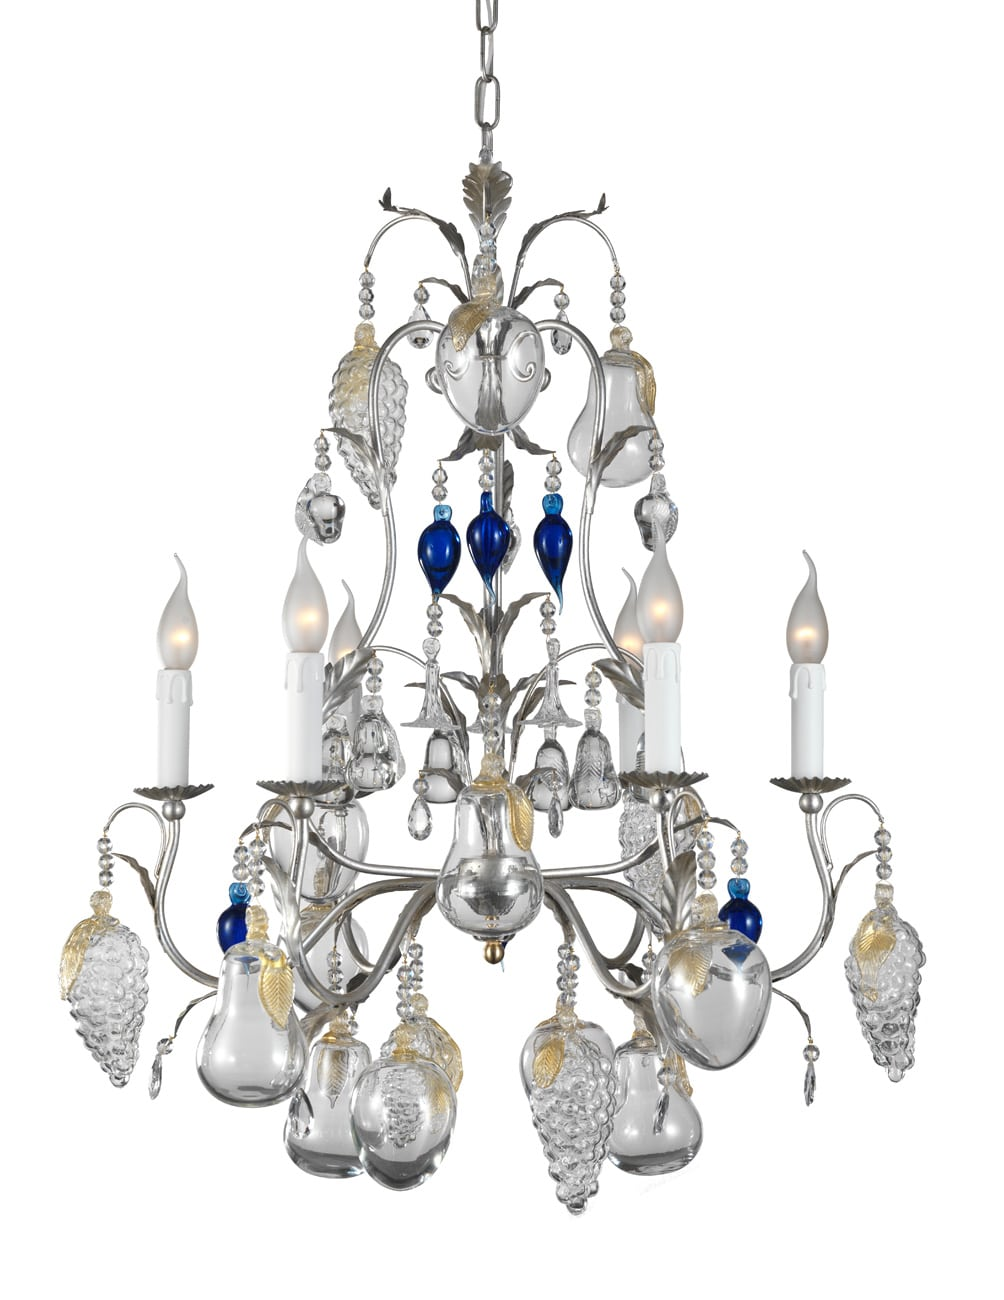 decorative-lighting-chandeliers-5